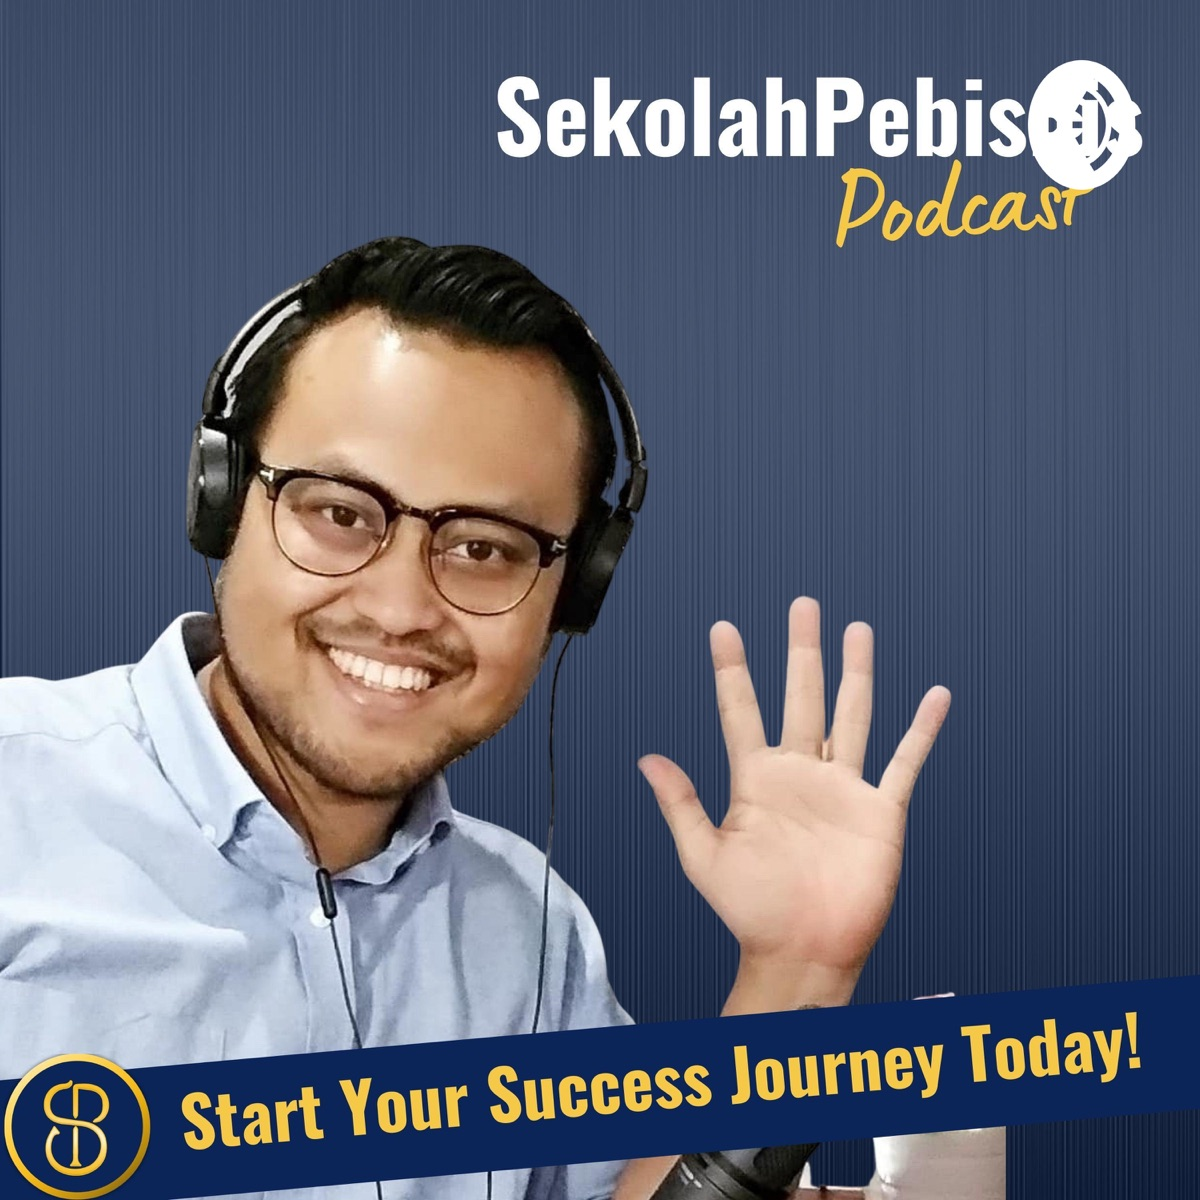 SekolahPebisnis Podcast with Yosef